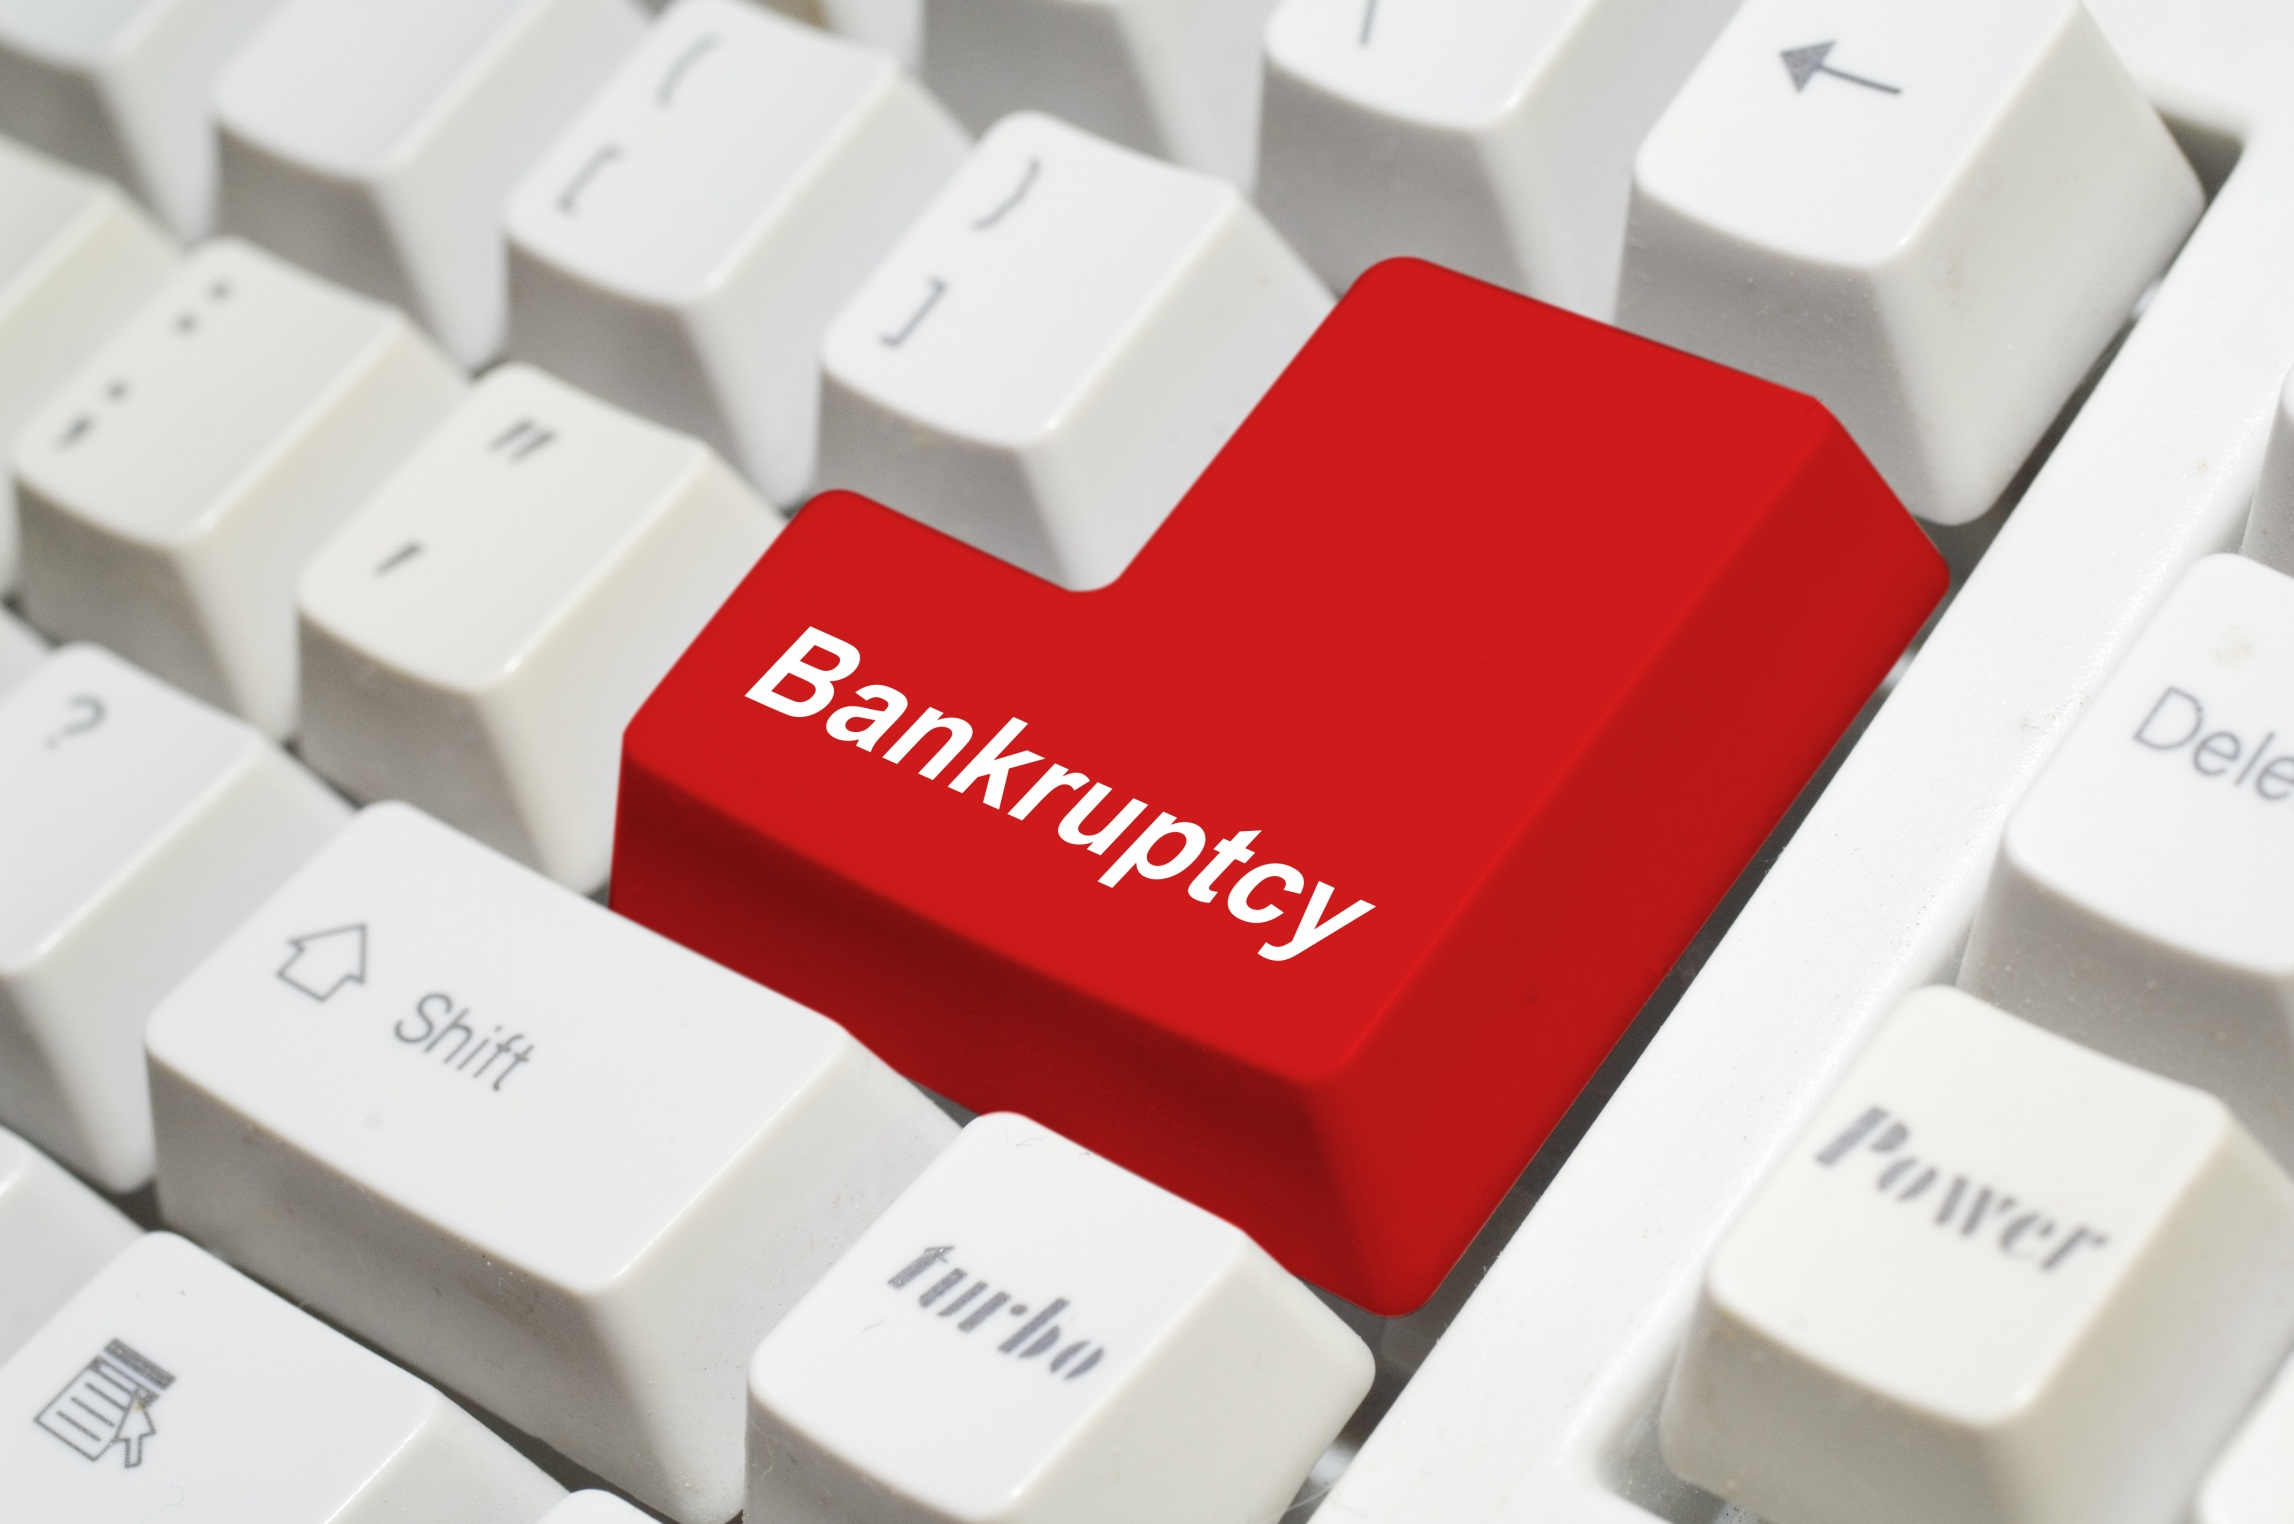 Bankruptcy - 10 photo